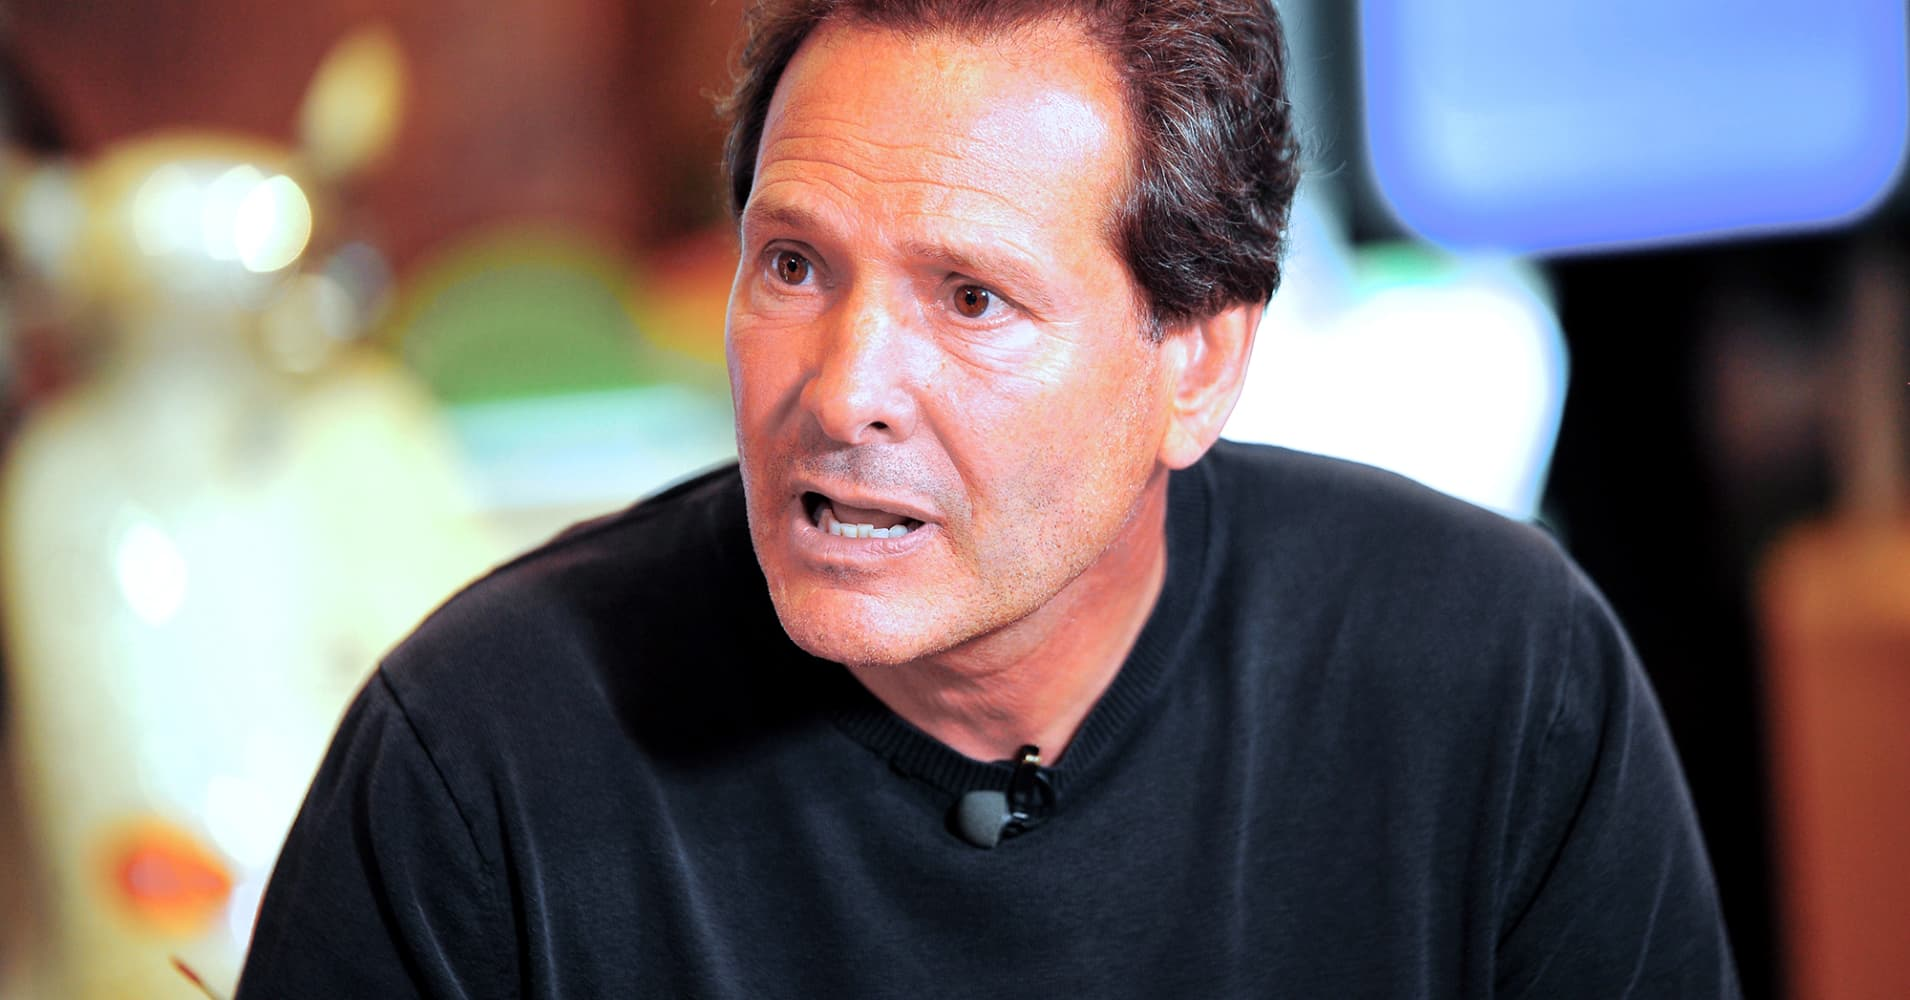 PayPal CEO predicts digital payments industry will mature into a $100 trillion market